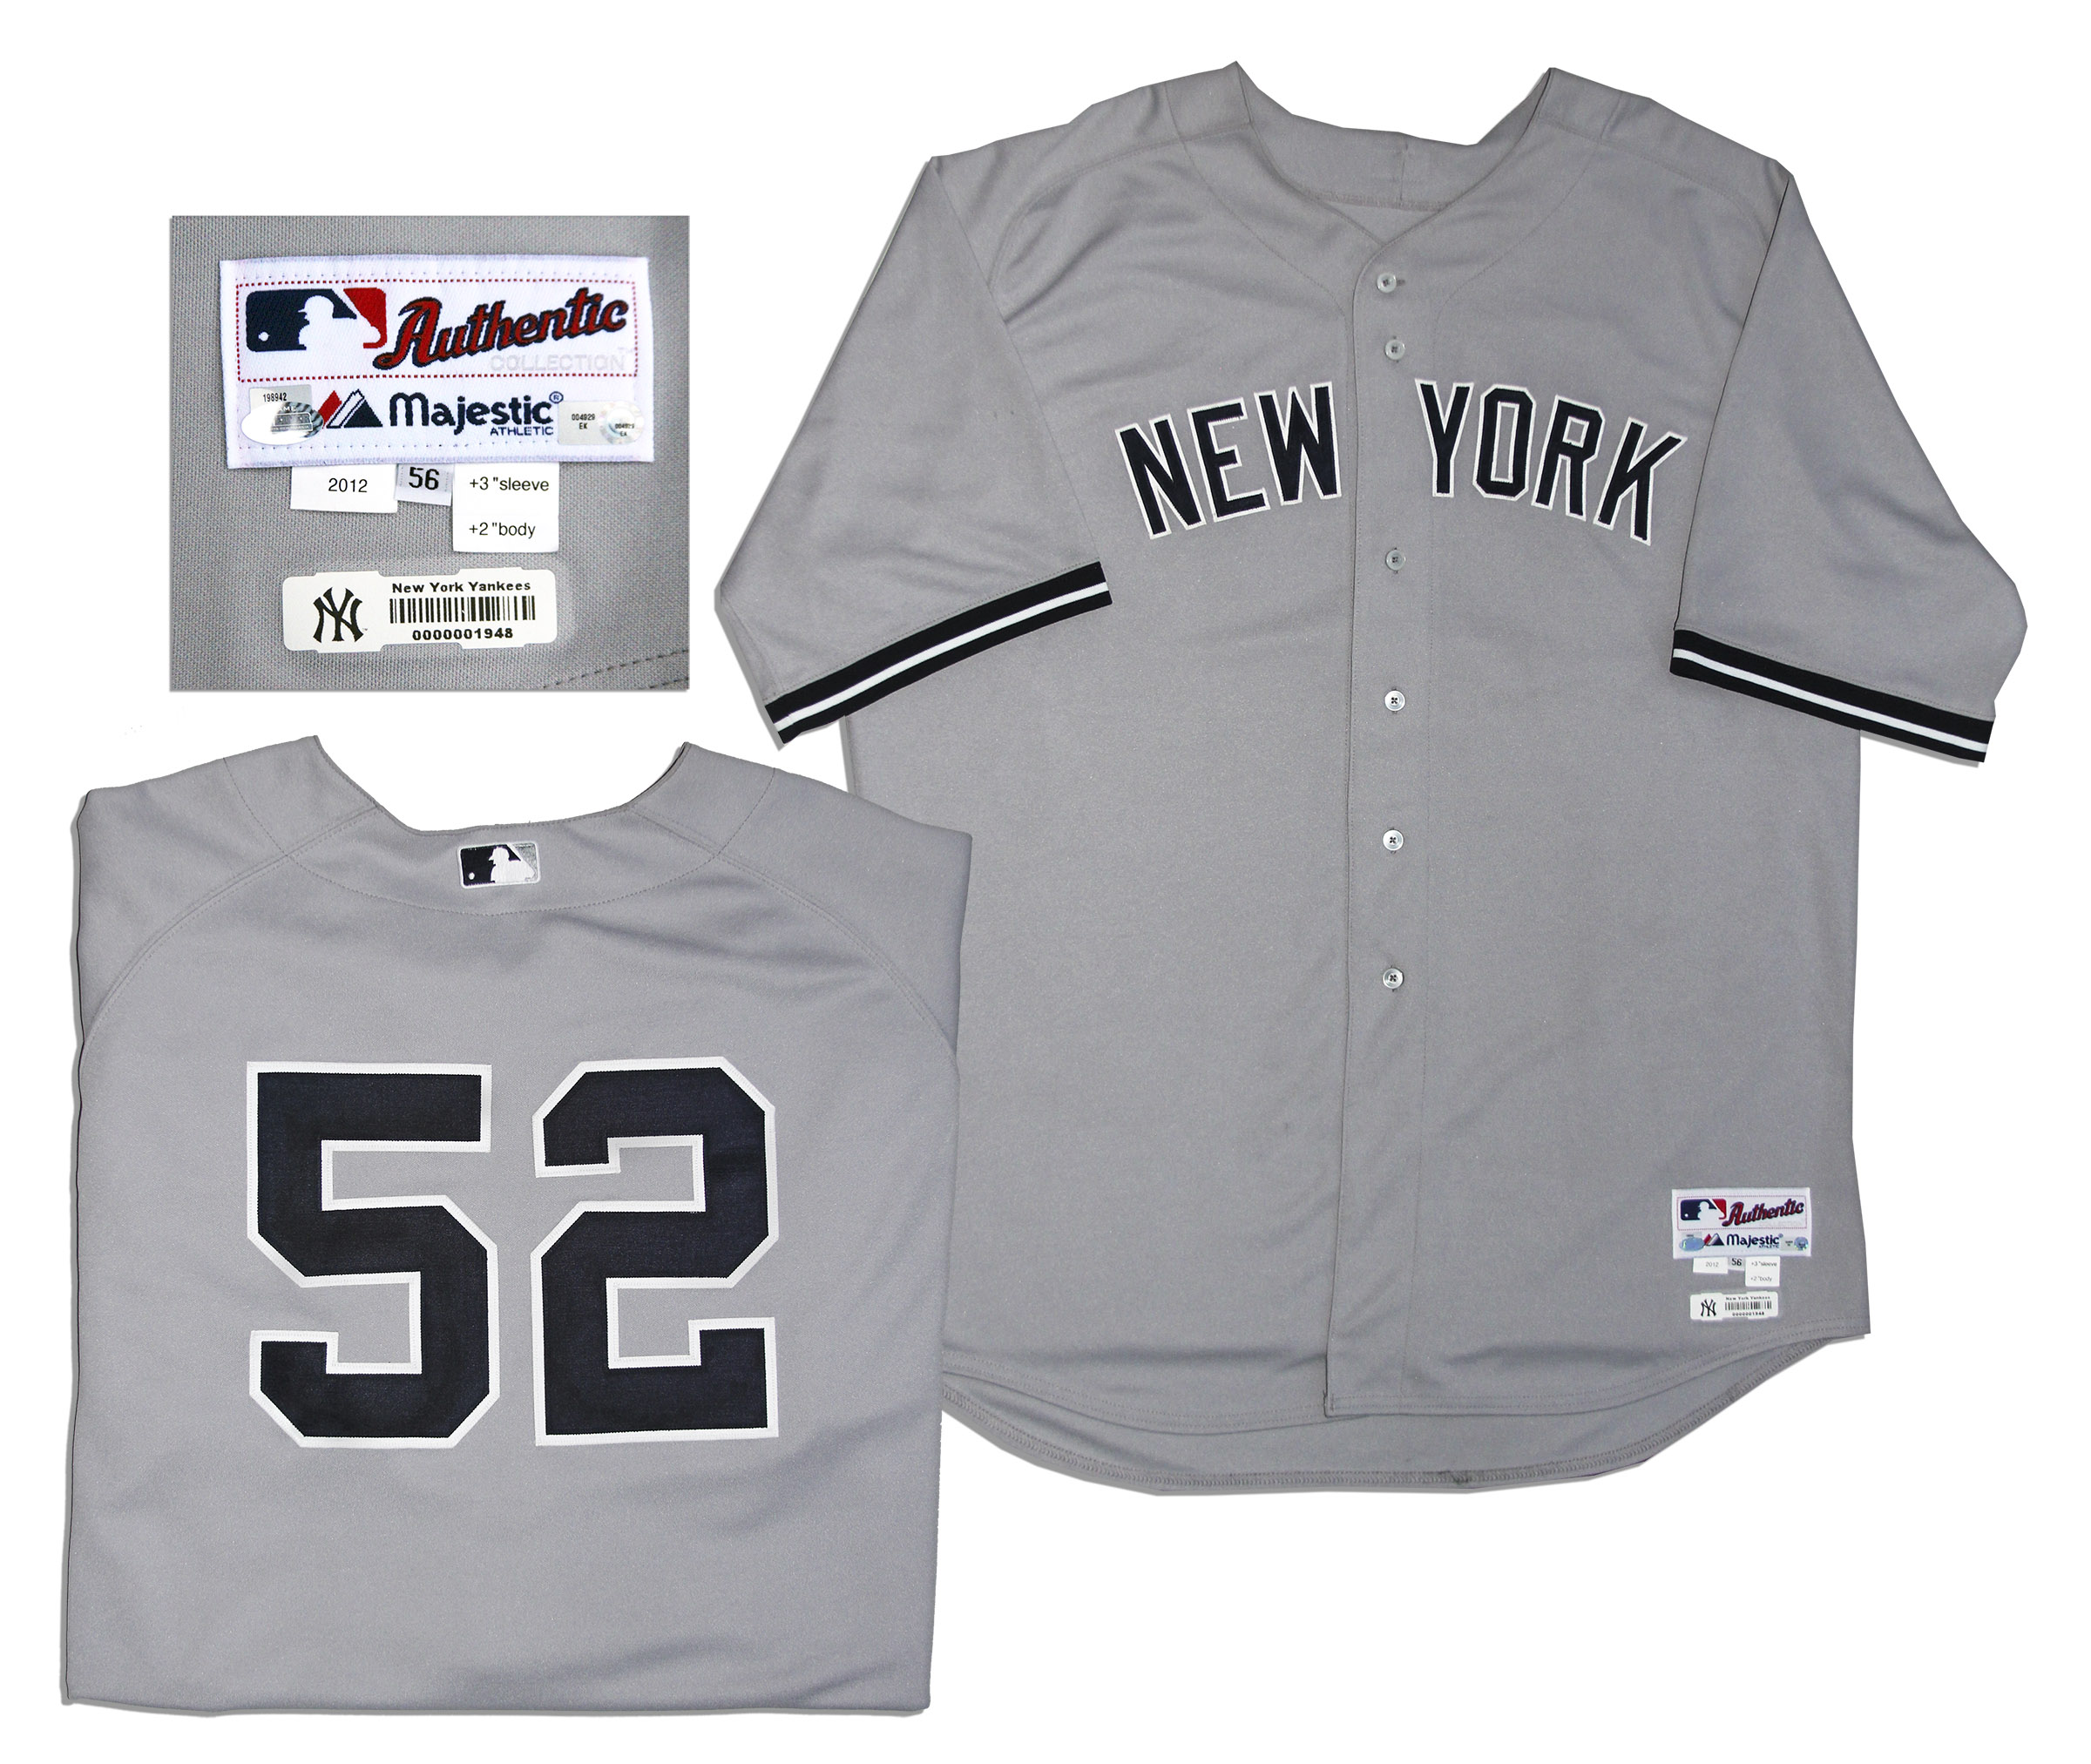 New York Yankees game worn jersey